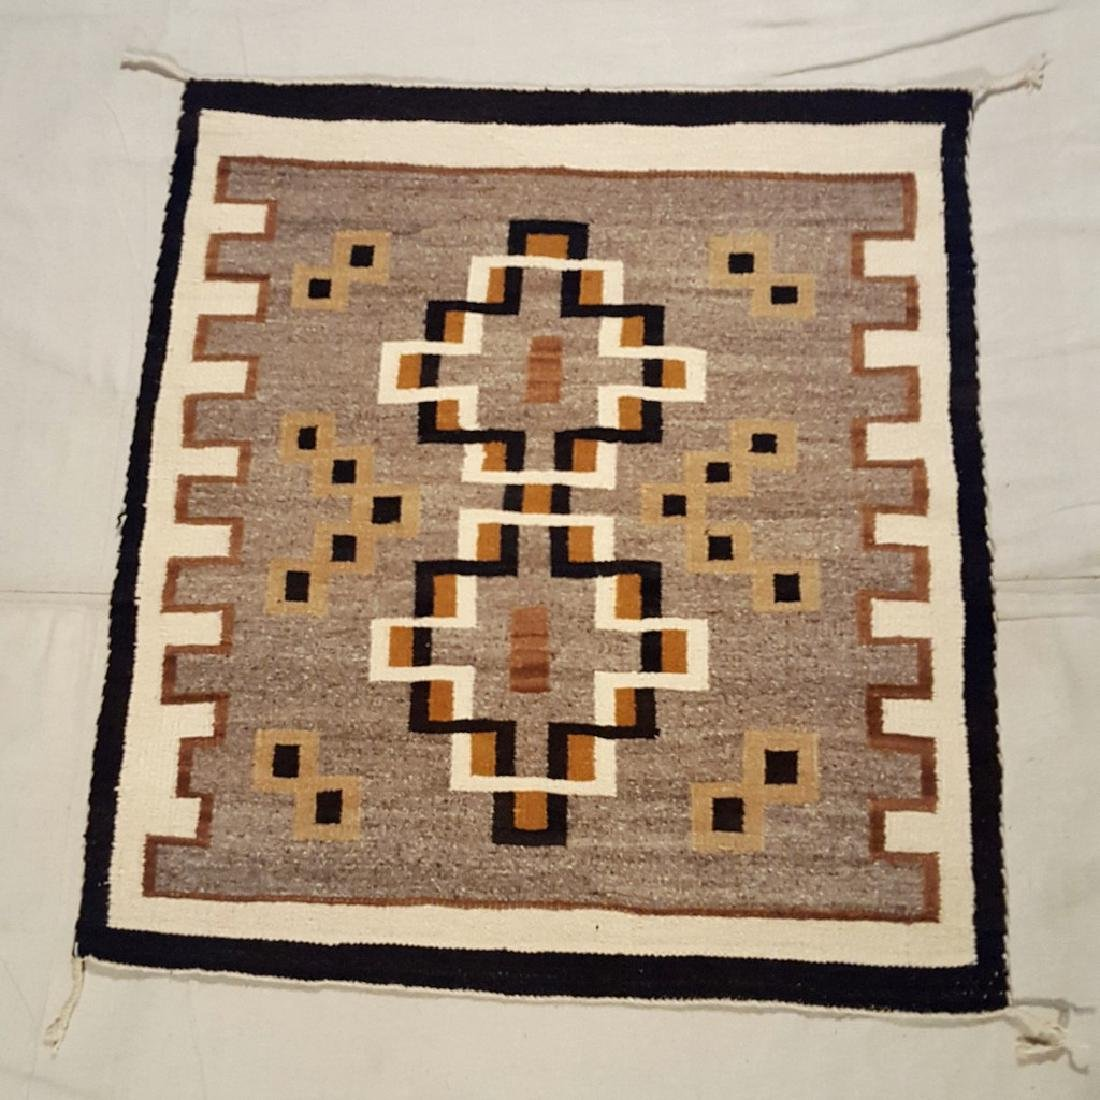 Small Two Grey Hills Woven Rug Ca 1940's